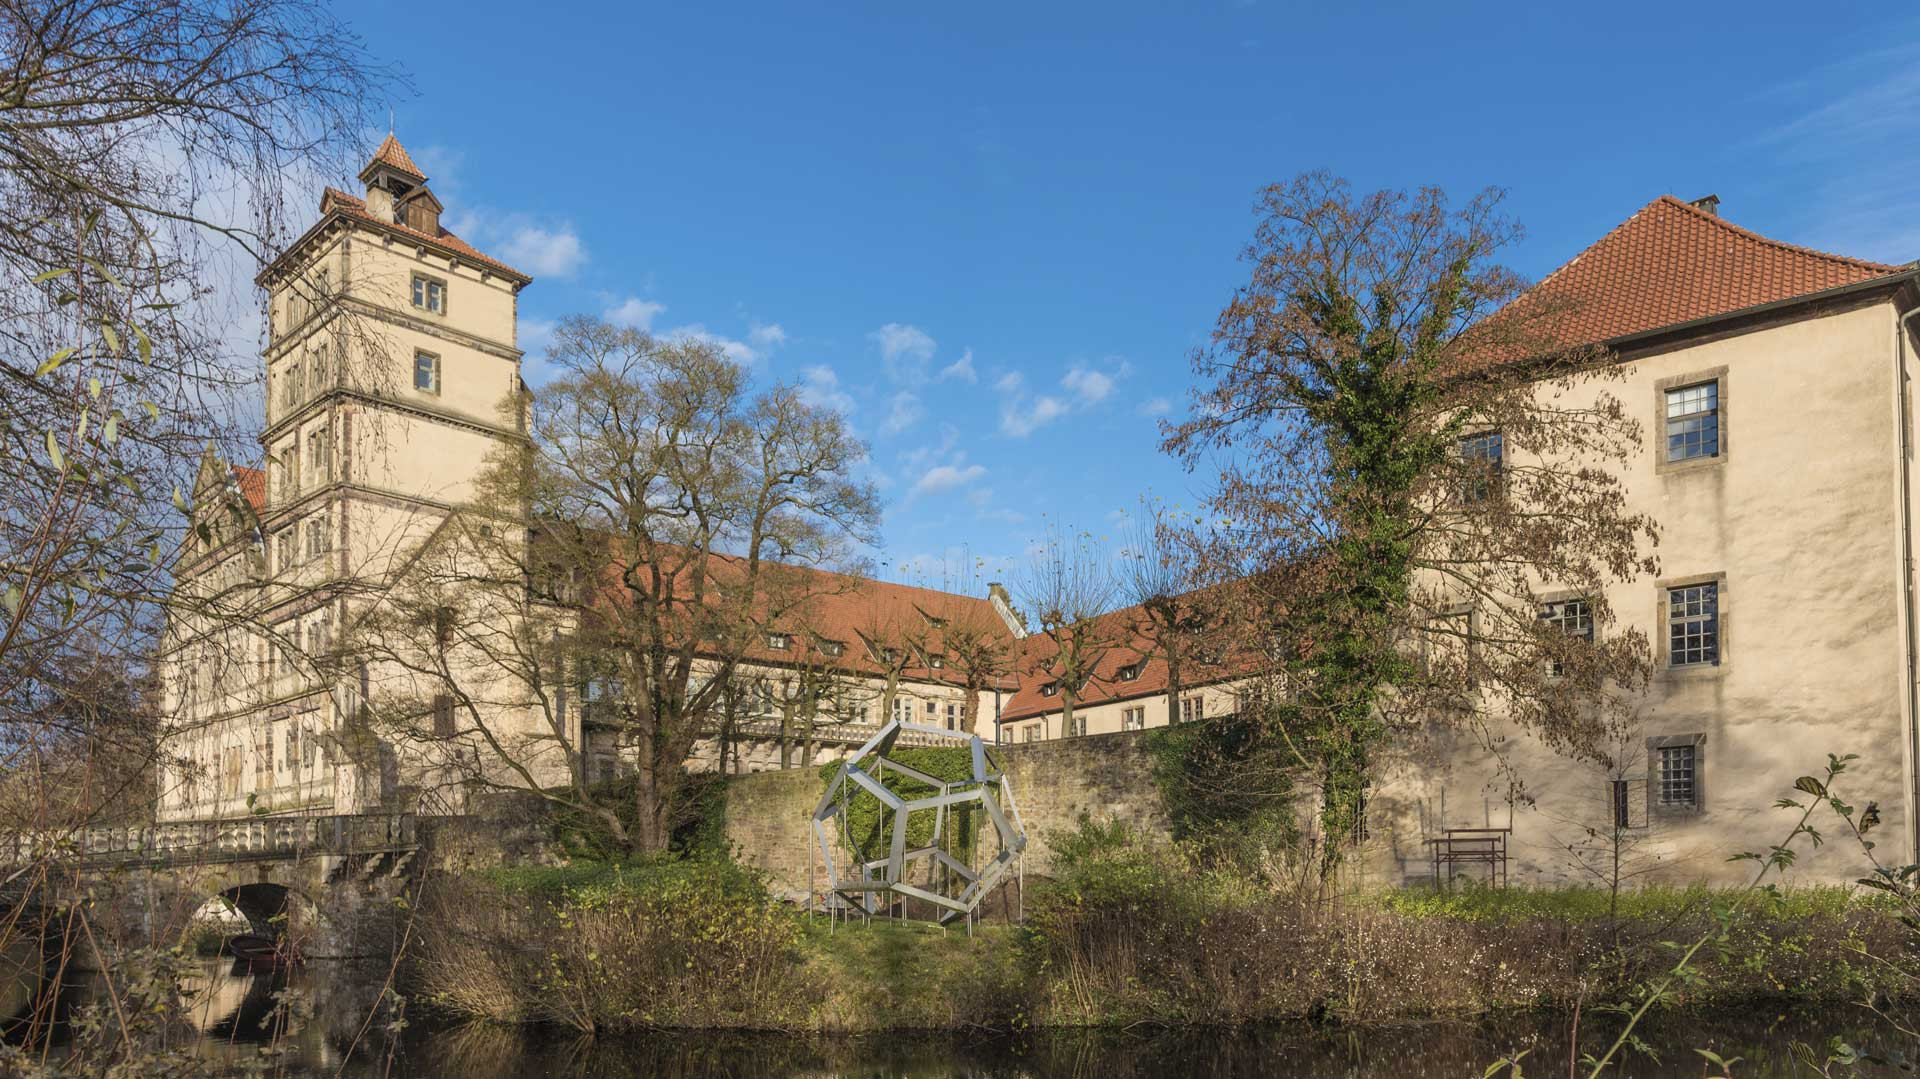 Weserrenaissance-Museum Schloss Brake